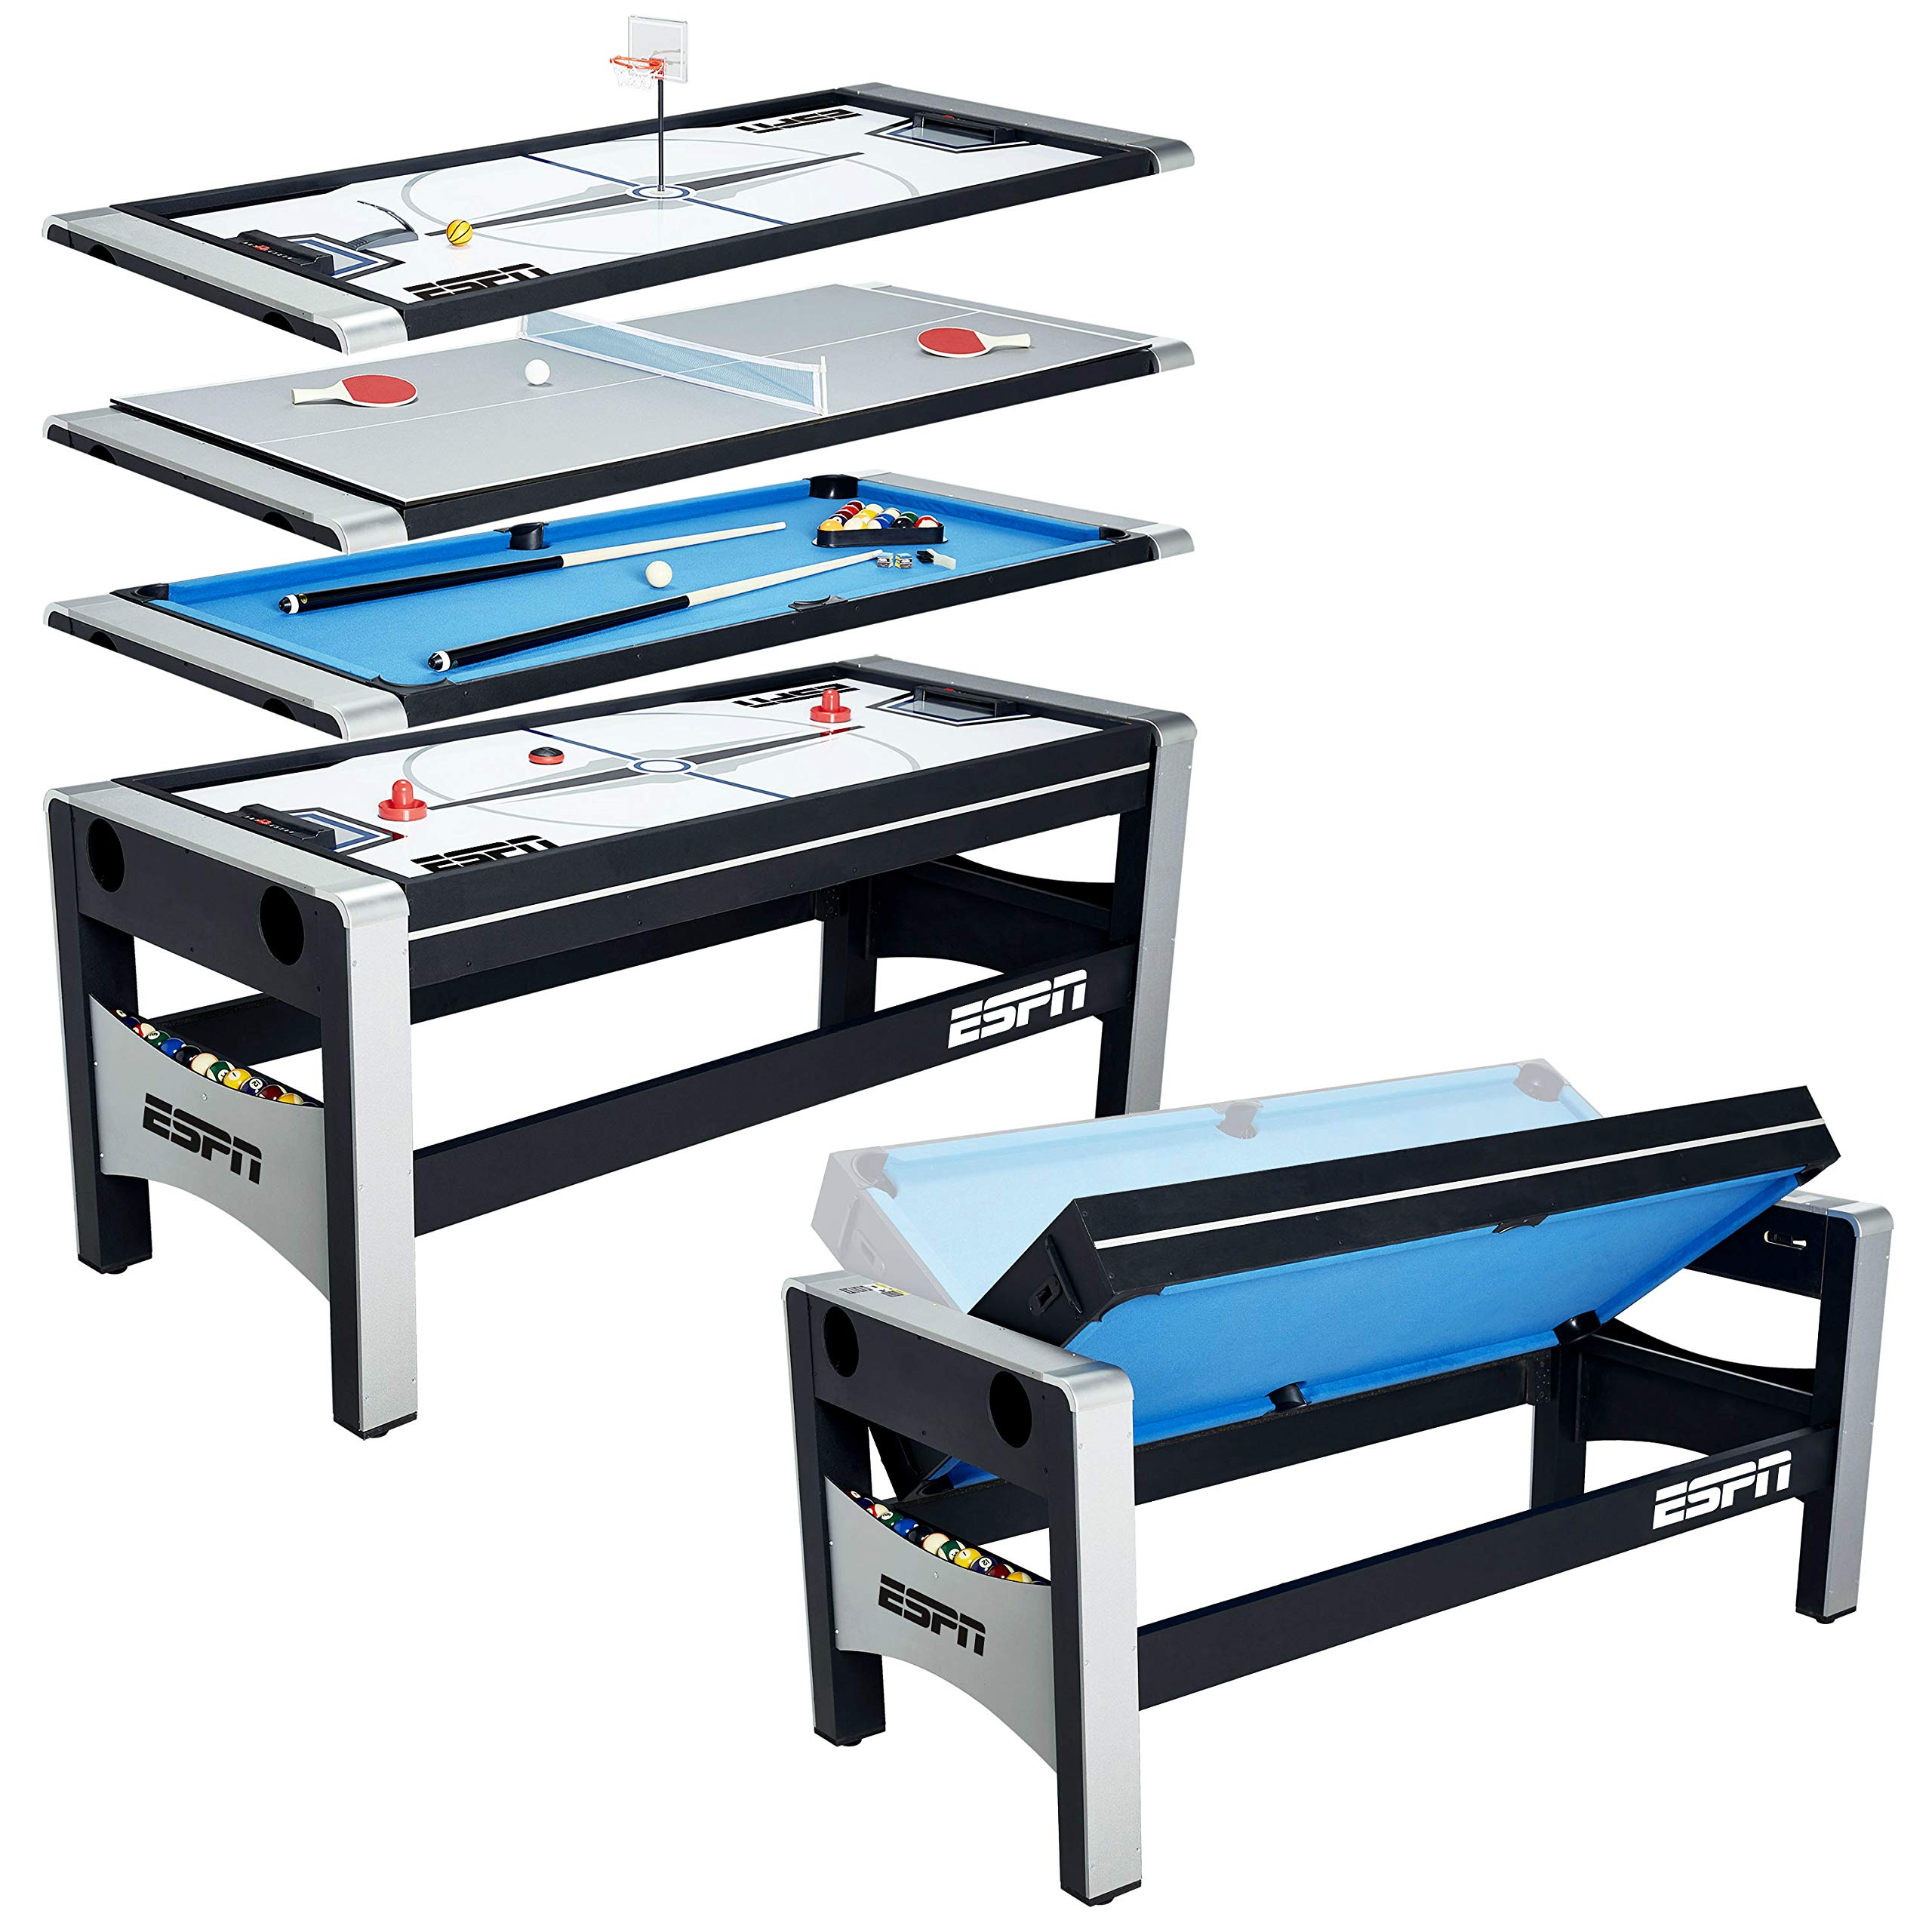 ESPN Multi Game Table 4-in-1 Swivel Combo Game Table, 4 Games with Hockey, Billiards, Table Tennis and Finger Shoot Basketball by ESPN